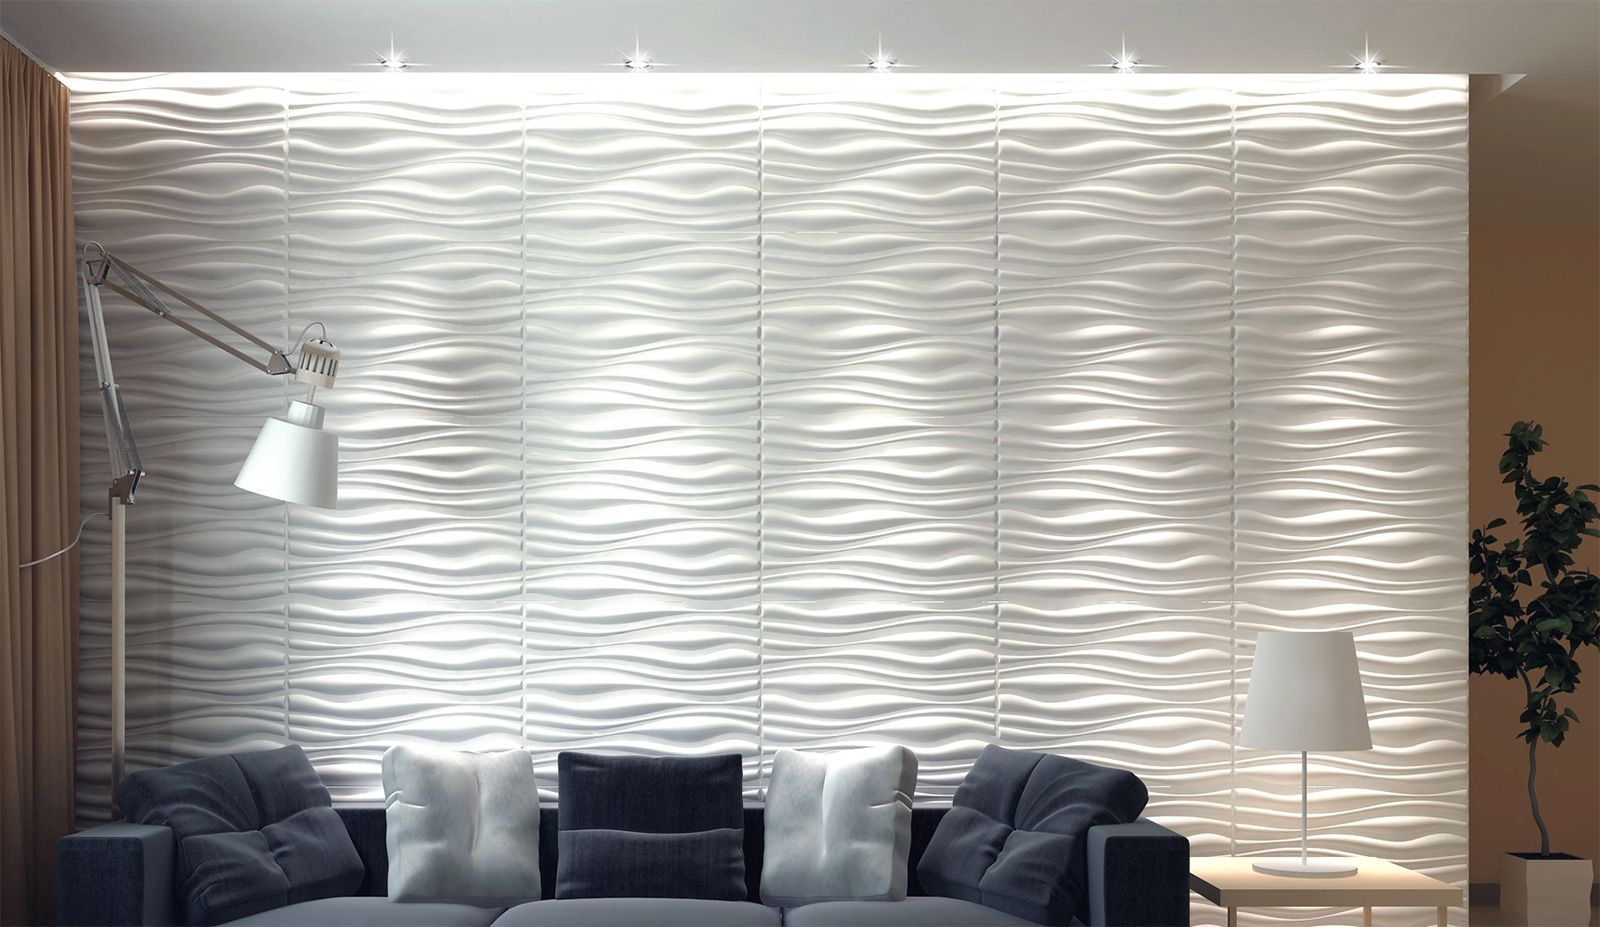 Neutral decor with 3D plaster wall